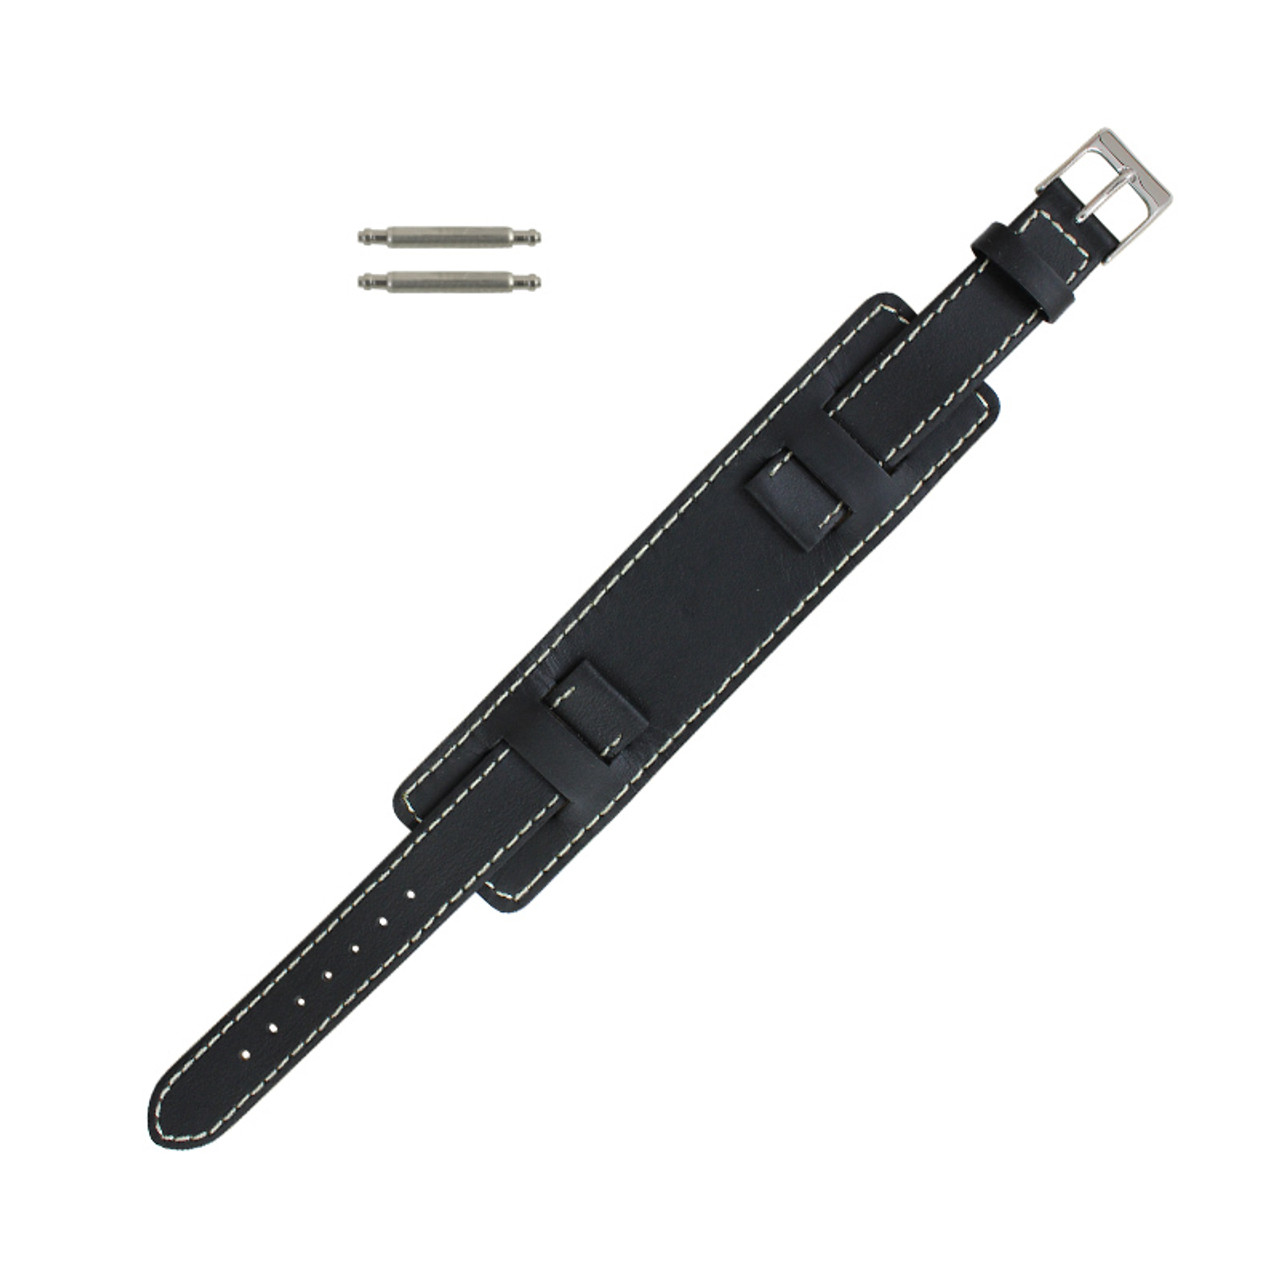 5769a3988373d1 Black Leather Wide Watch Band 14mm Stitched 6 3/4 Inch Length